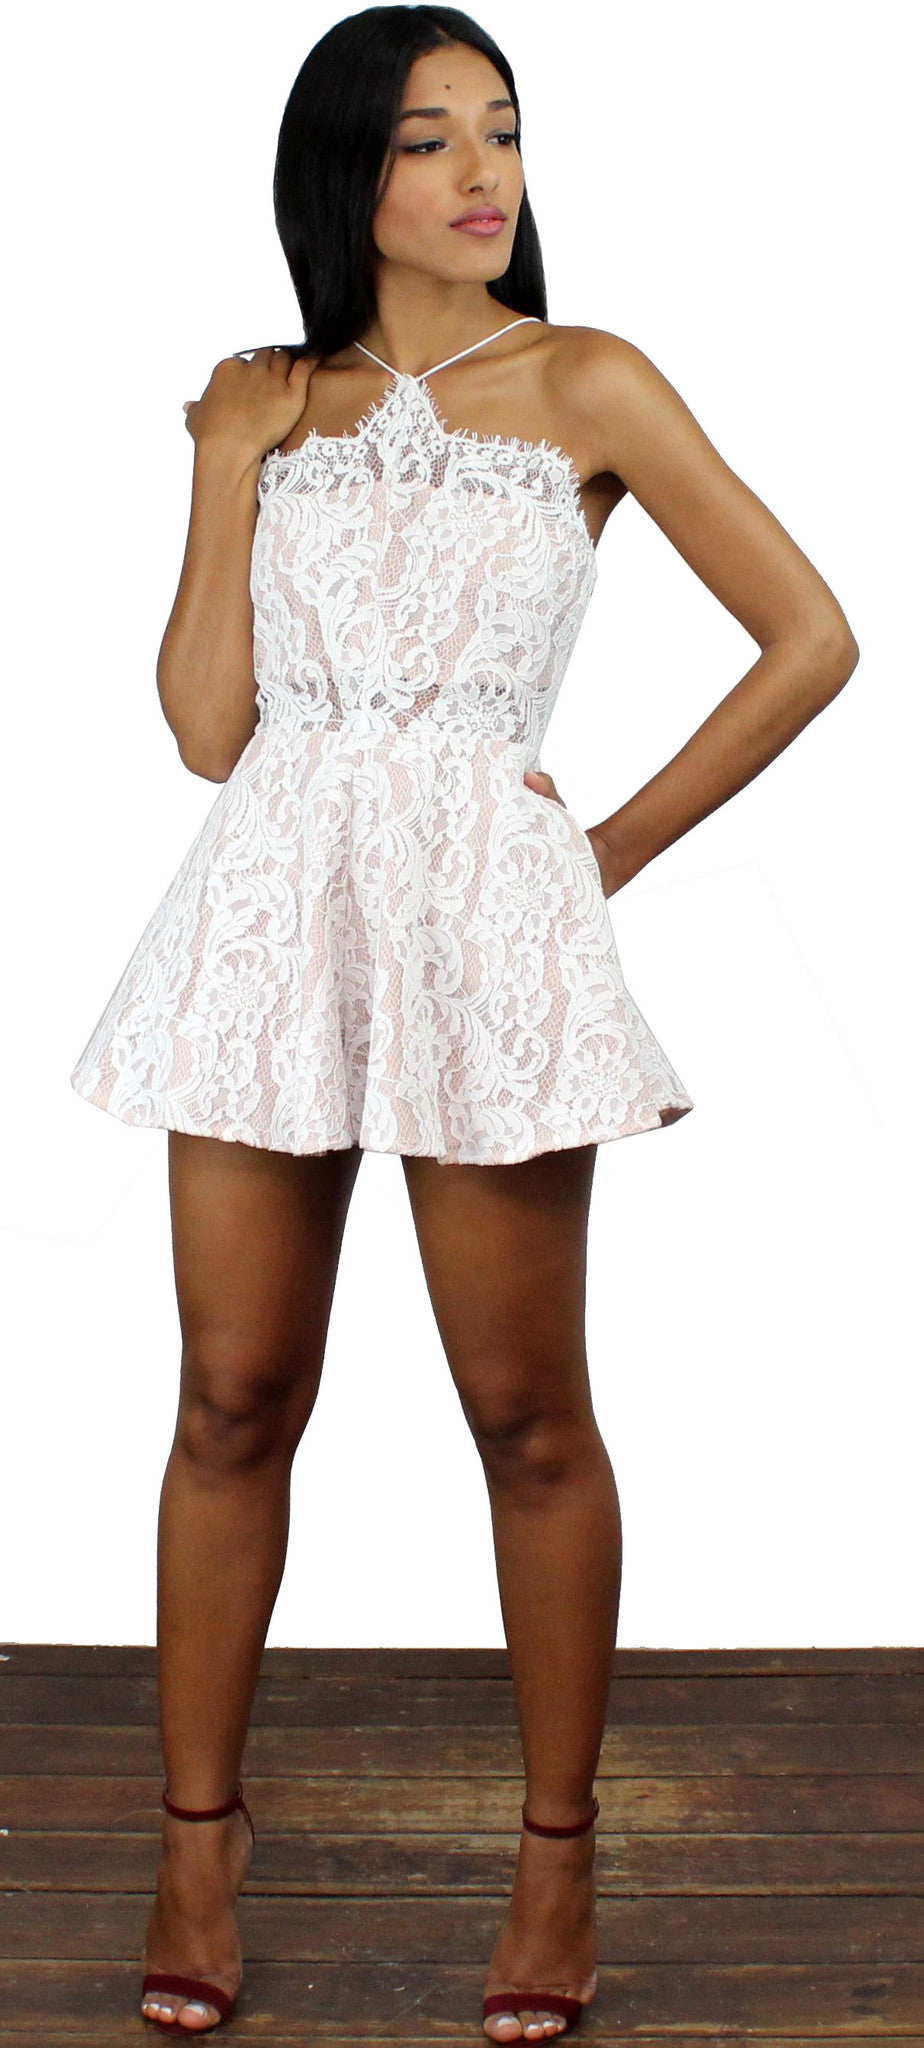 Enticing Endeavors White Lace Romper